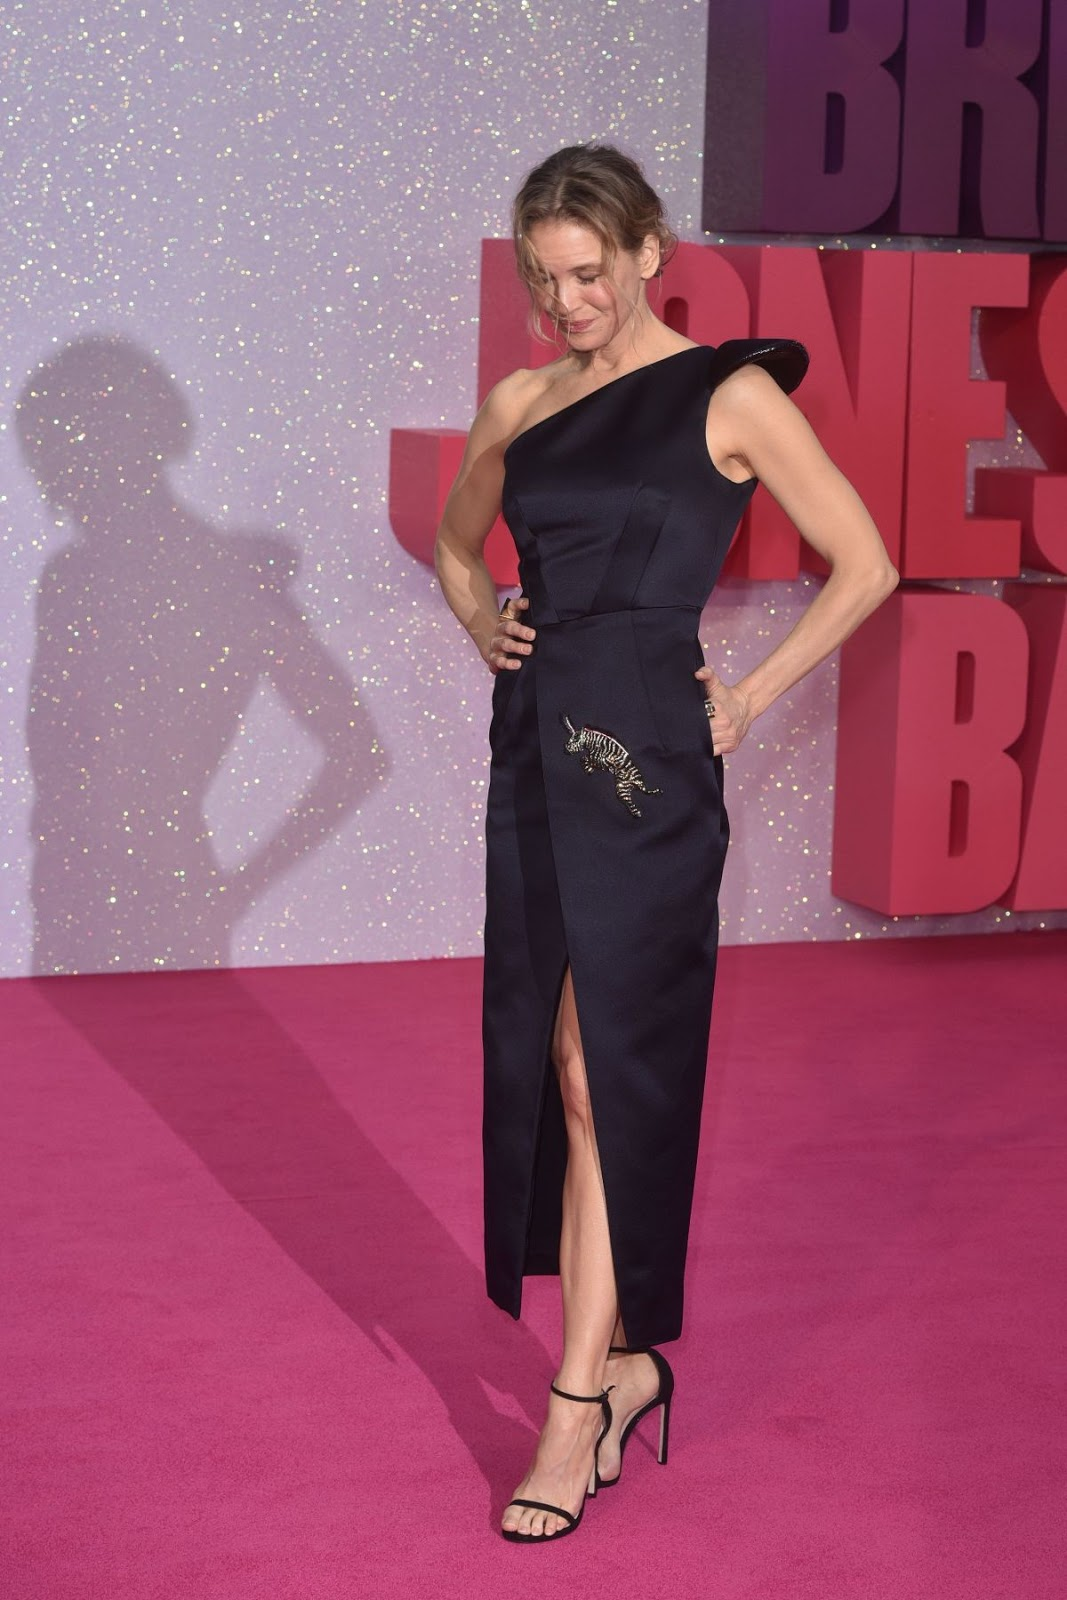 HD Photos & Wallpapers of Renee Zellweger at Bridget Jones Baby London Premiere